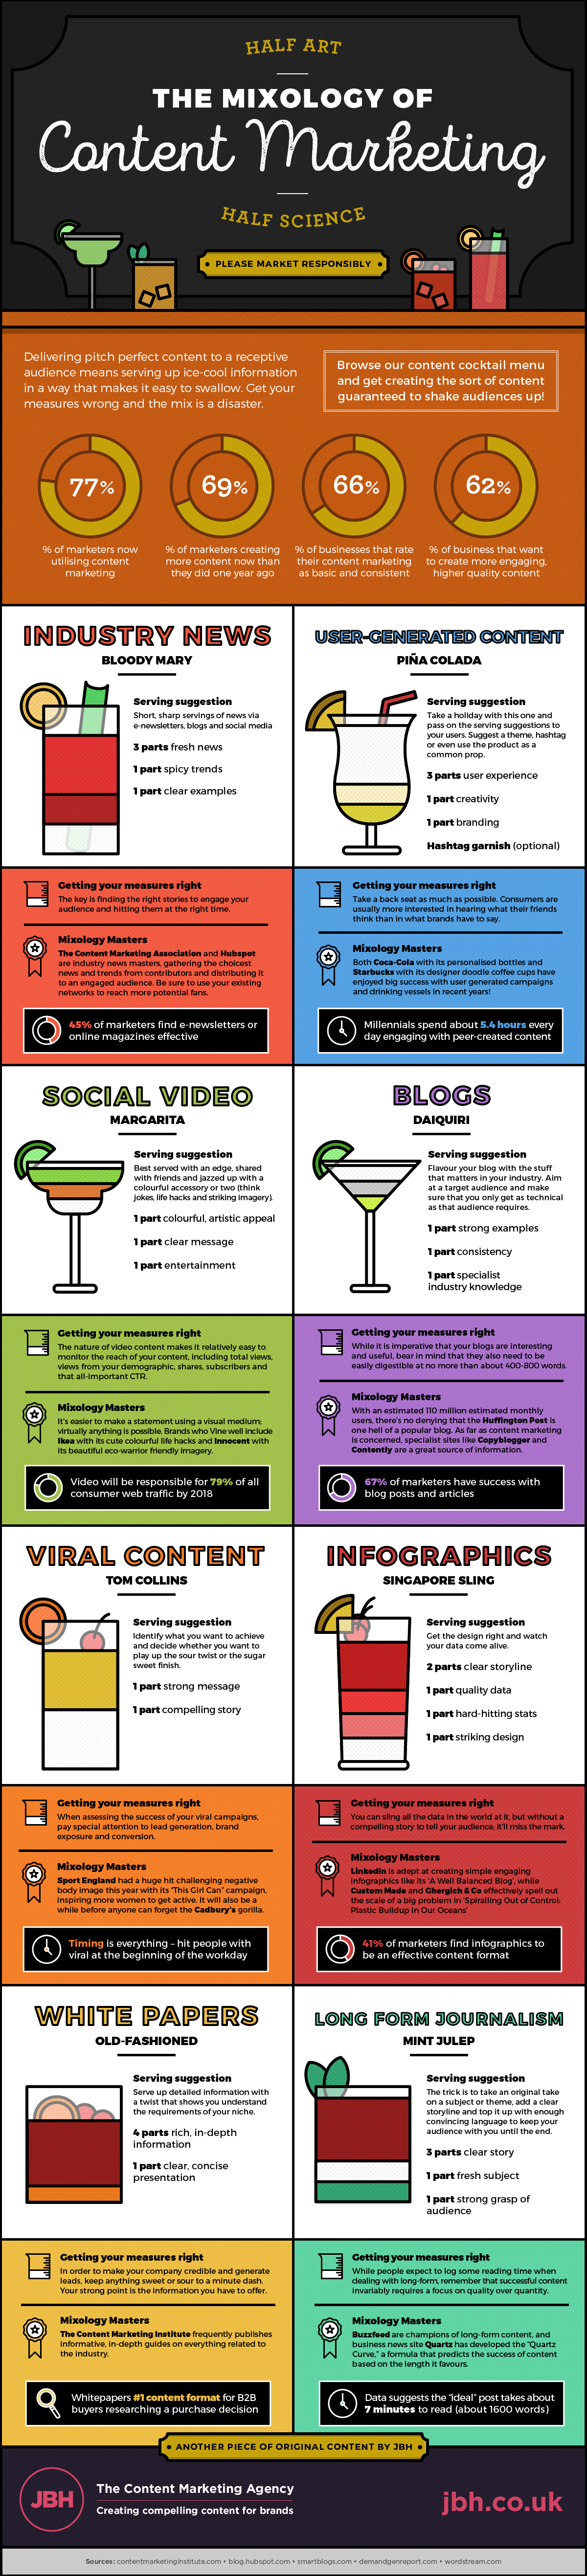 Content Marketing Focuses On Creating Online Content For A Targeted Audience Grea Infographic Marketing Social Media Infographic Content Marketing Infographic